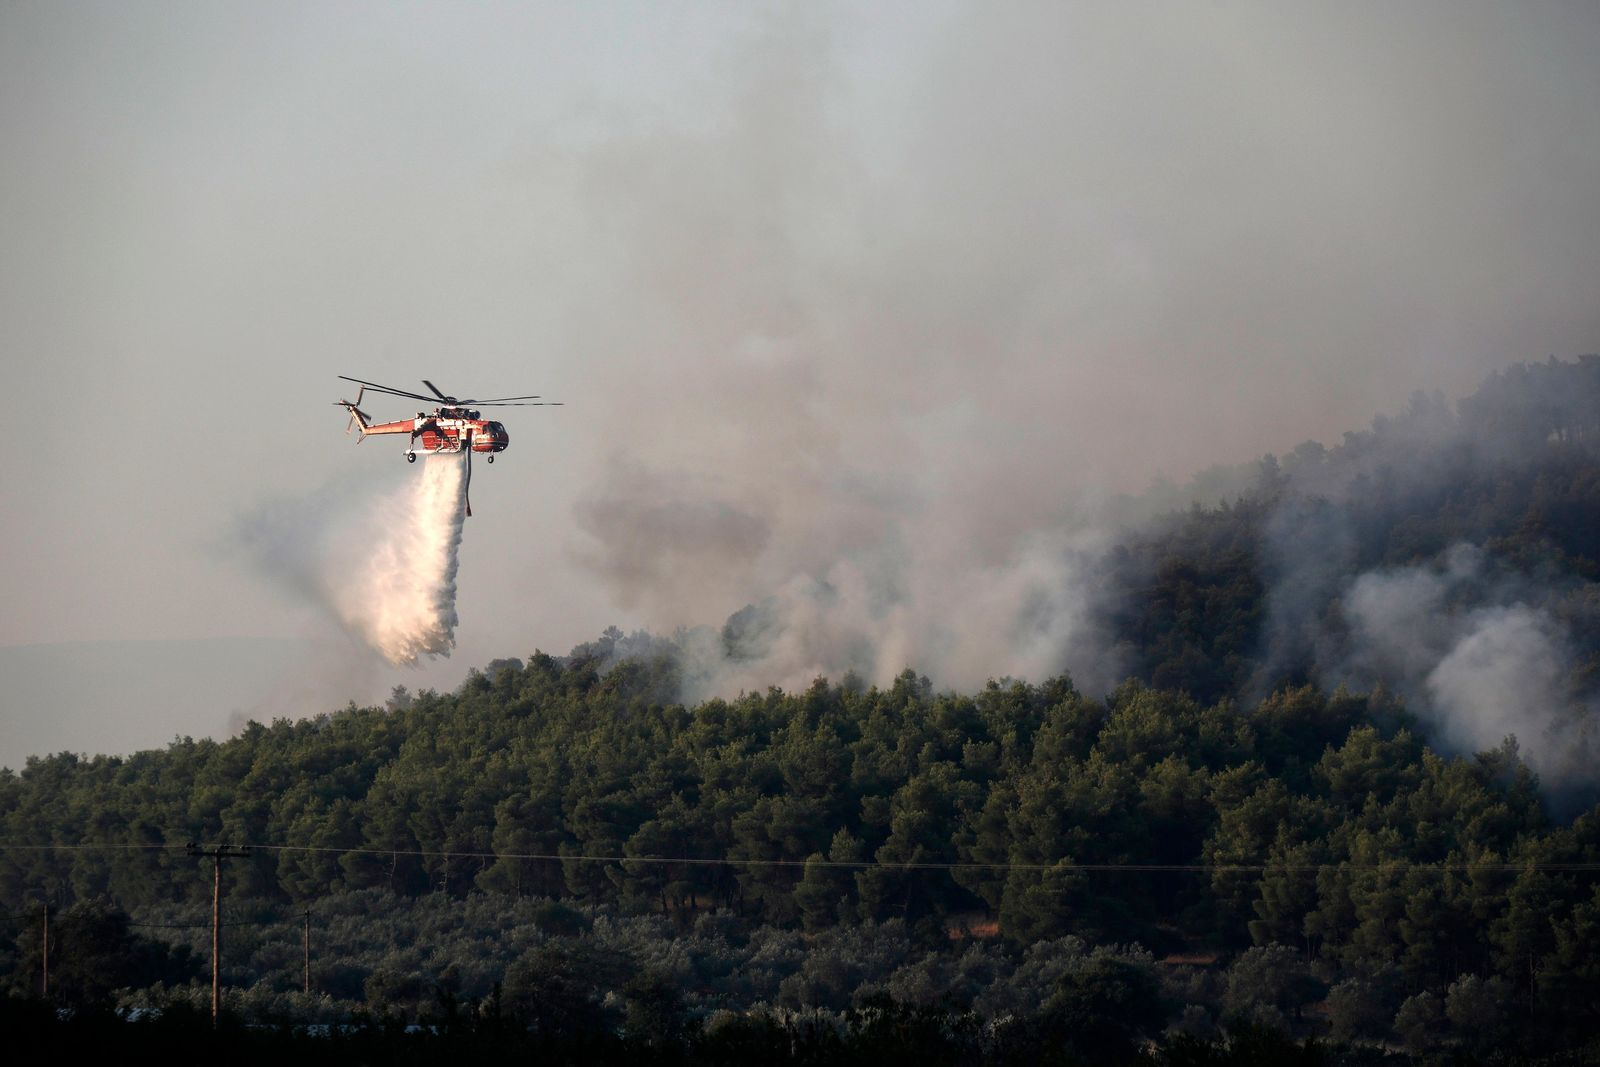 File- An helicopter operates over a wildfire in Makrymalli village on the Greek island of Evia, Wednesday, Aug. 14, 2019. (AP Photo/Yorgos Karahalis)